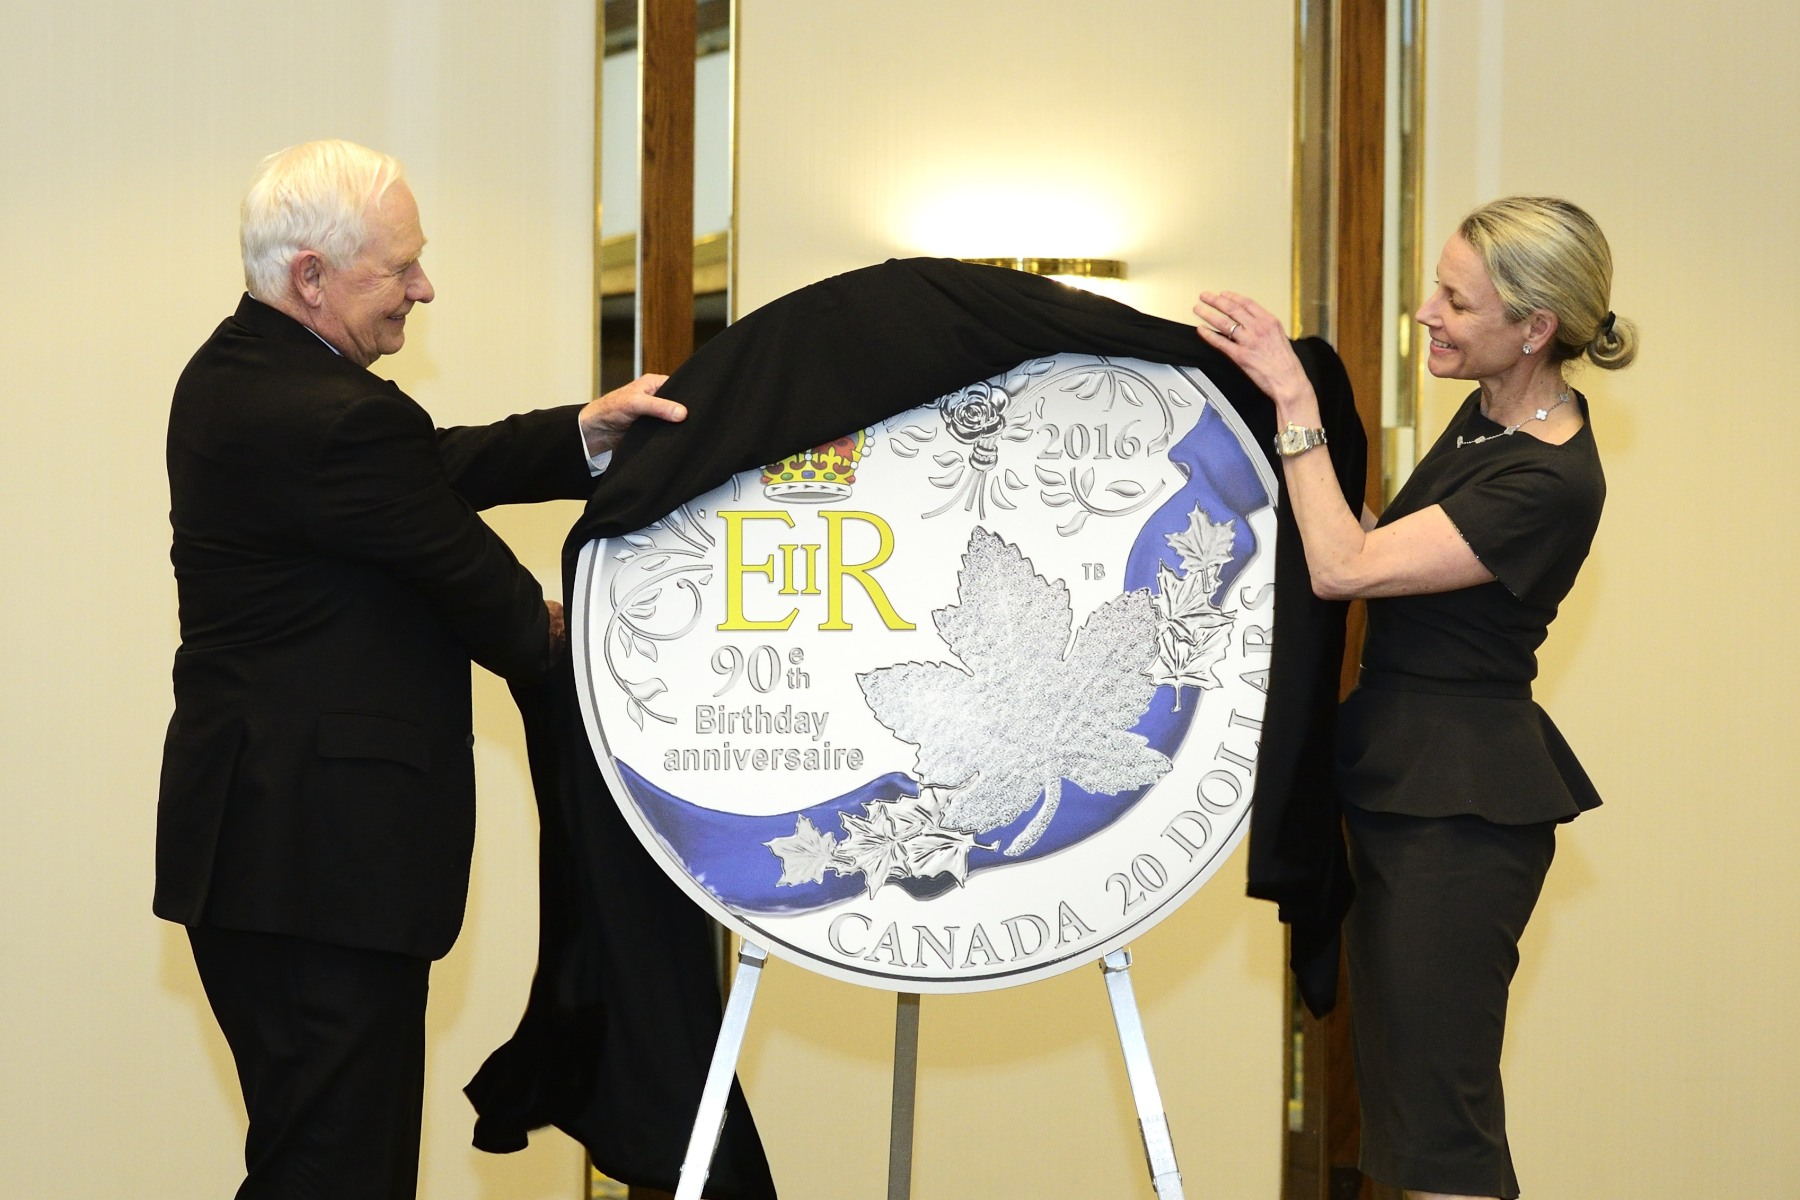 Afterwards, the Governor General unveiled a commemorative coin produced by the Royal Canadian Mint to mark this occasion.